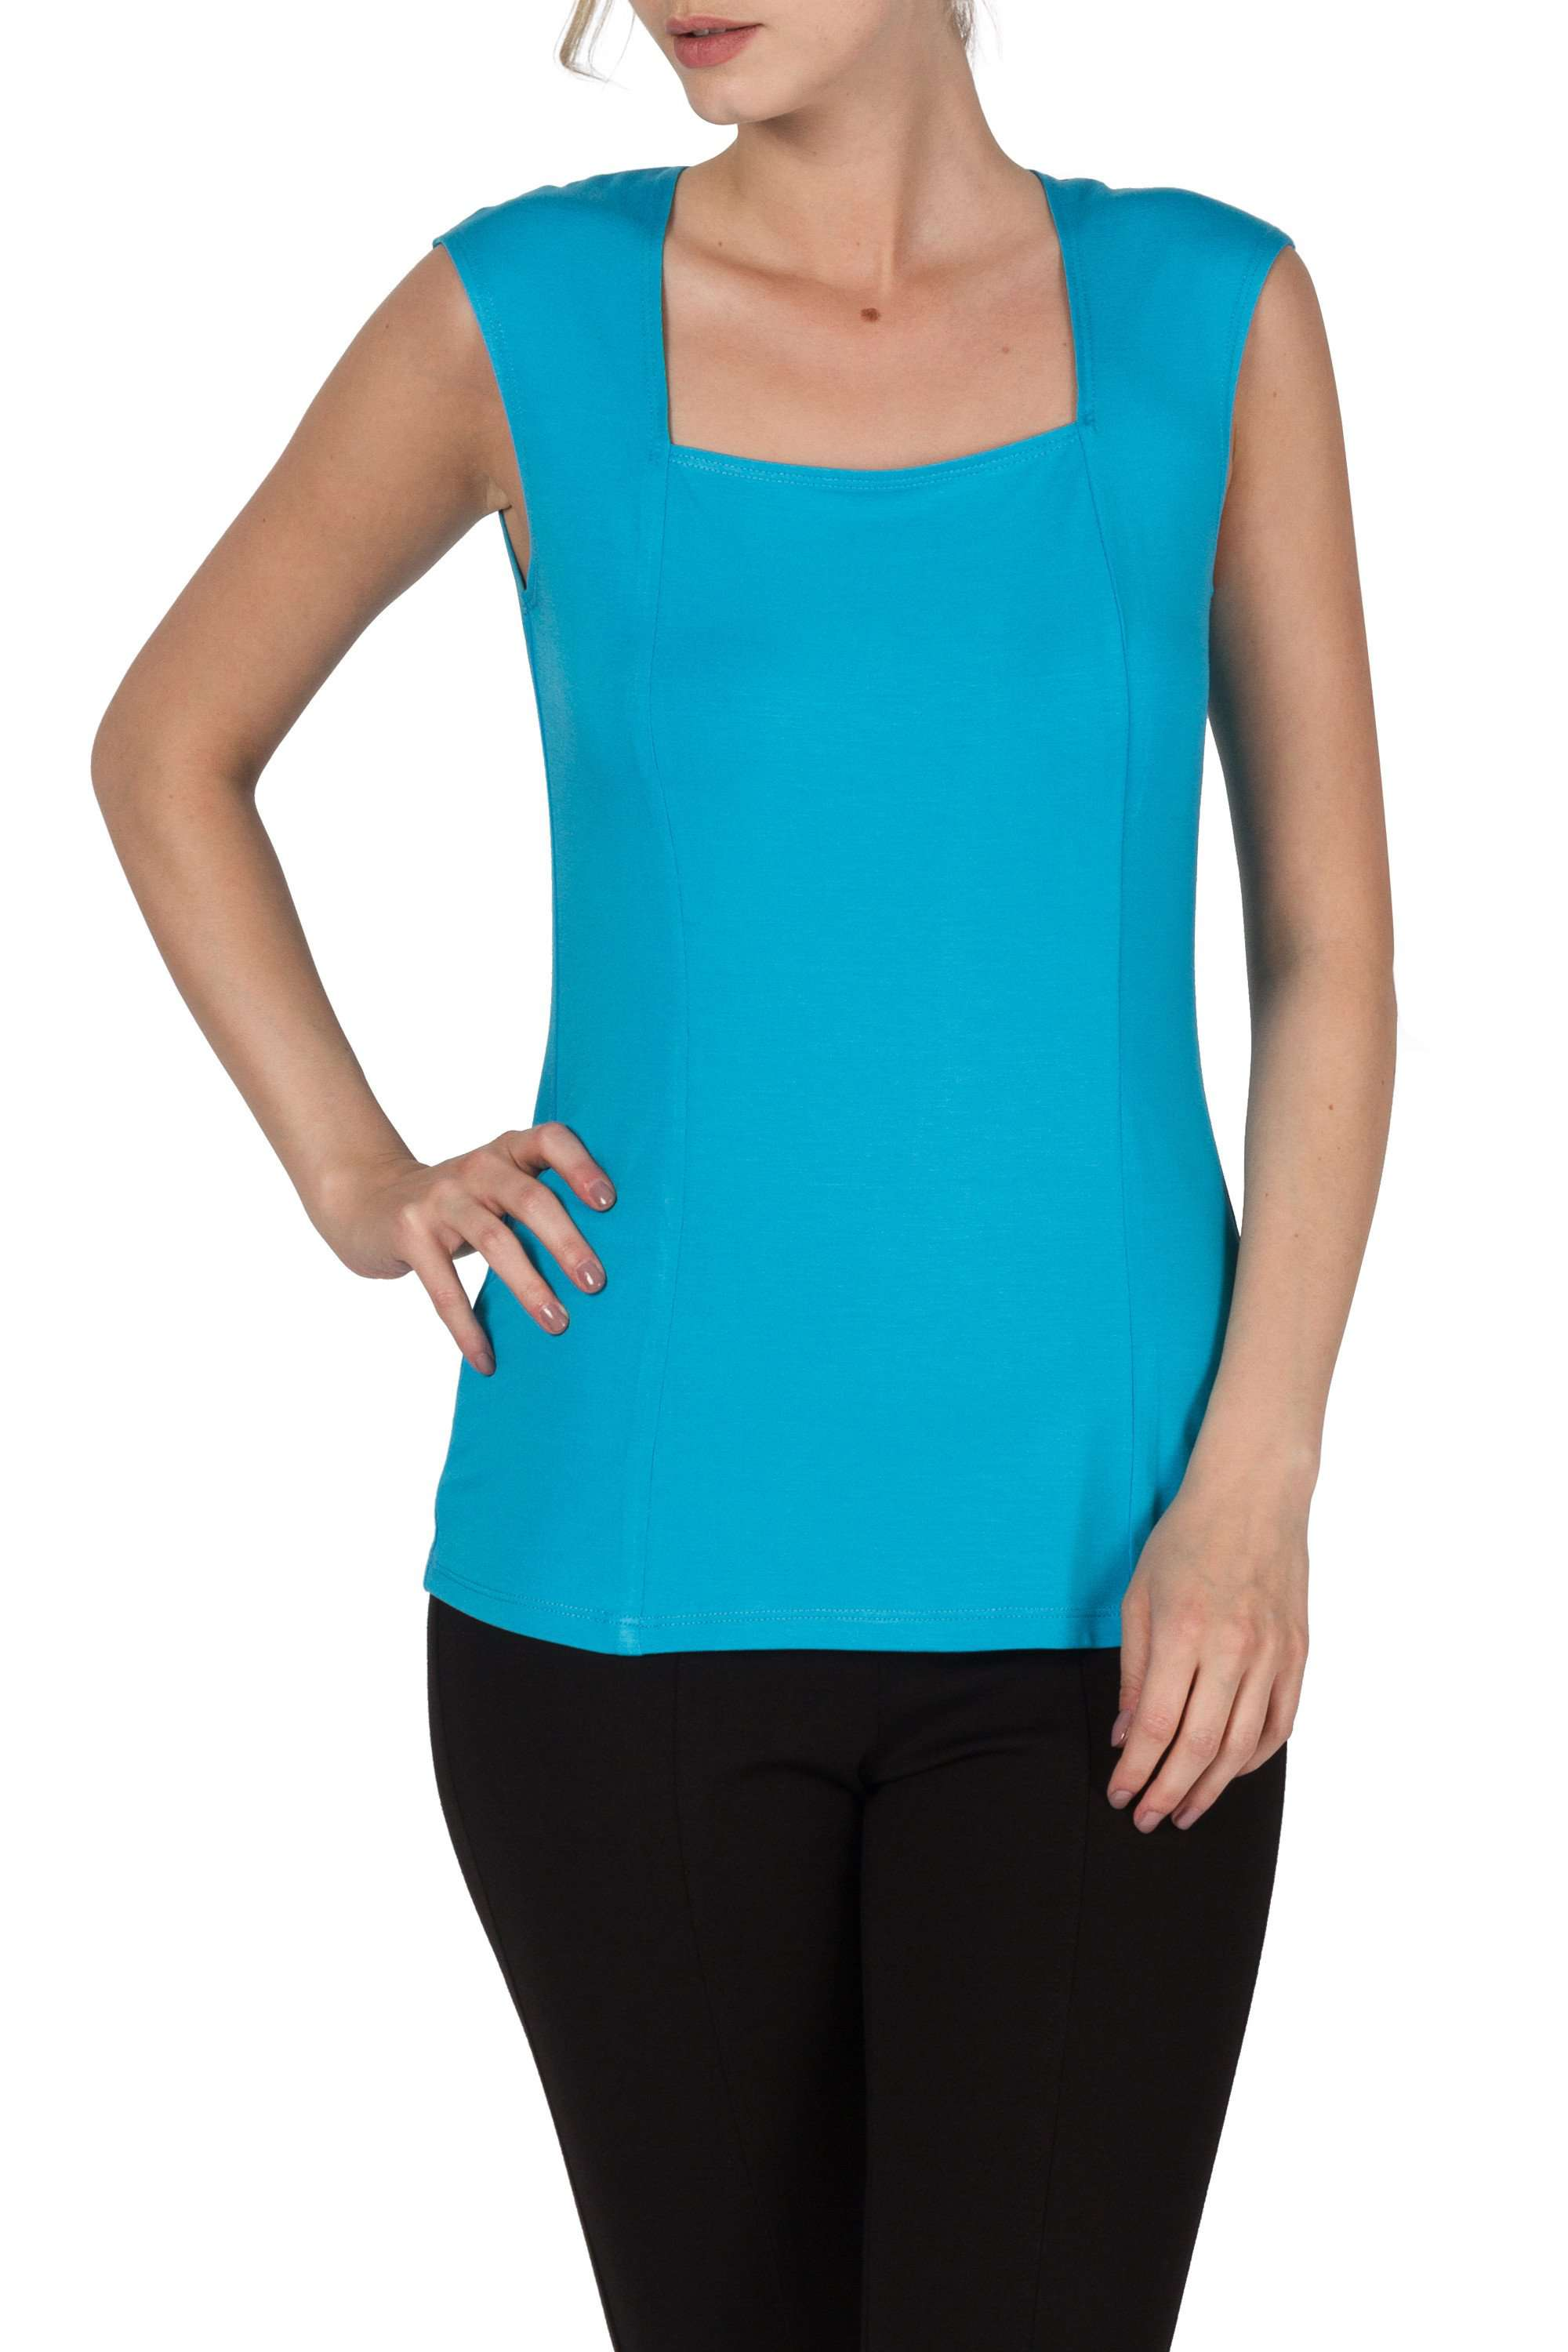 Women's Turquoise Camisole - Yvonne Marie - Yvonne Marie